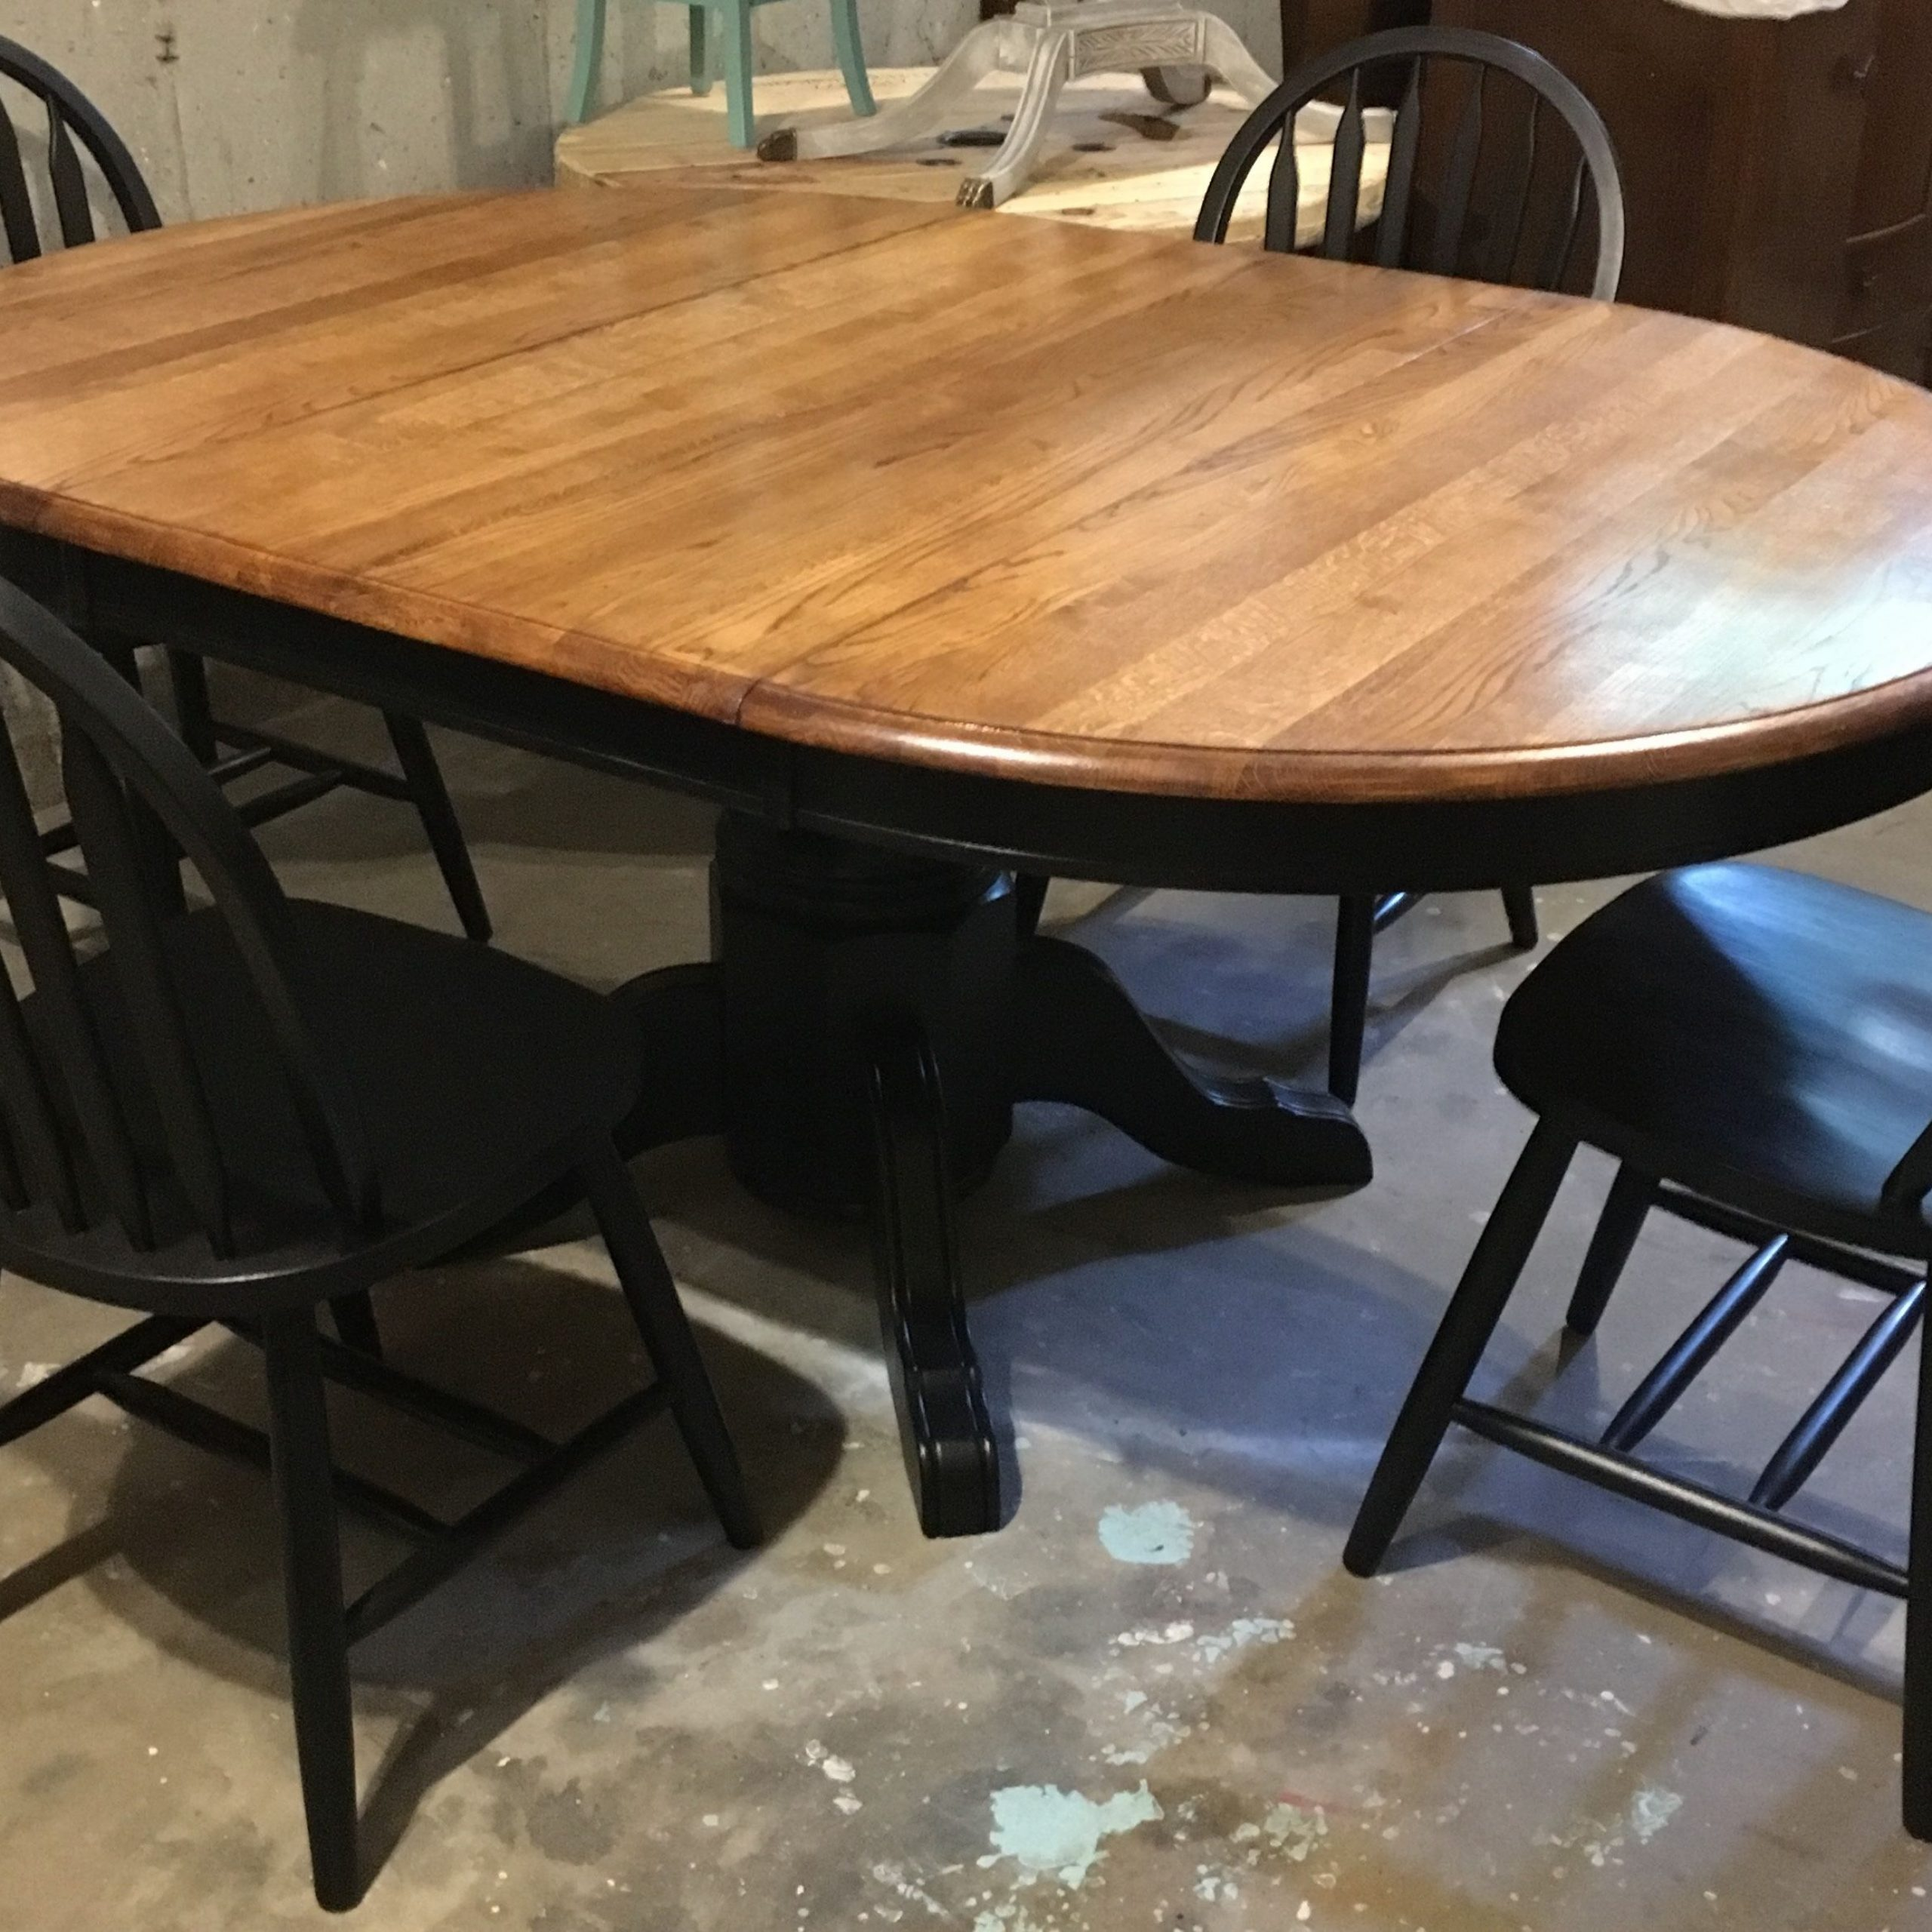 Oak Tabletop With Large Leaf, Sanded Down To Raw Wood And Pertaining To Latest Blackened Oak Benchwright Pedestal Extending Dining Tables (View 20 of 25)